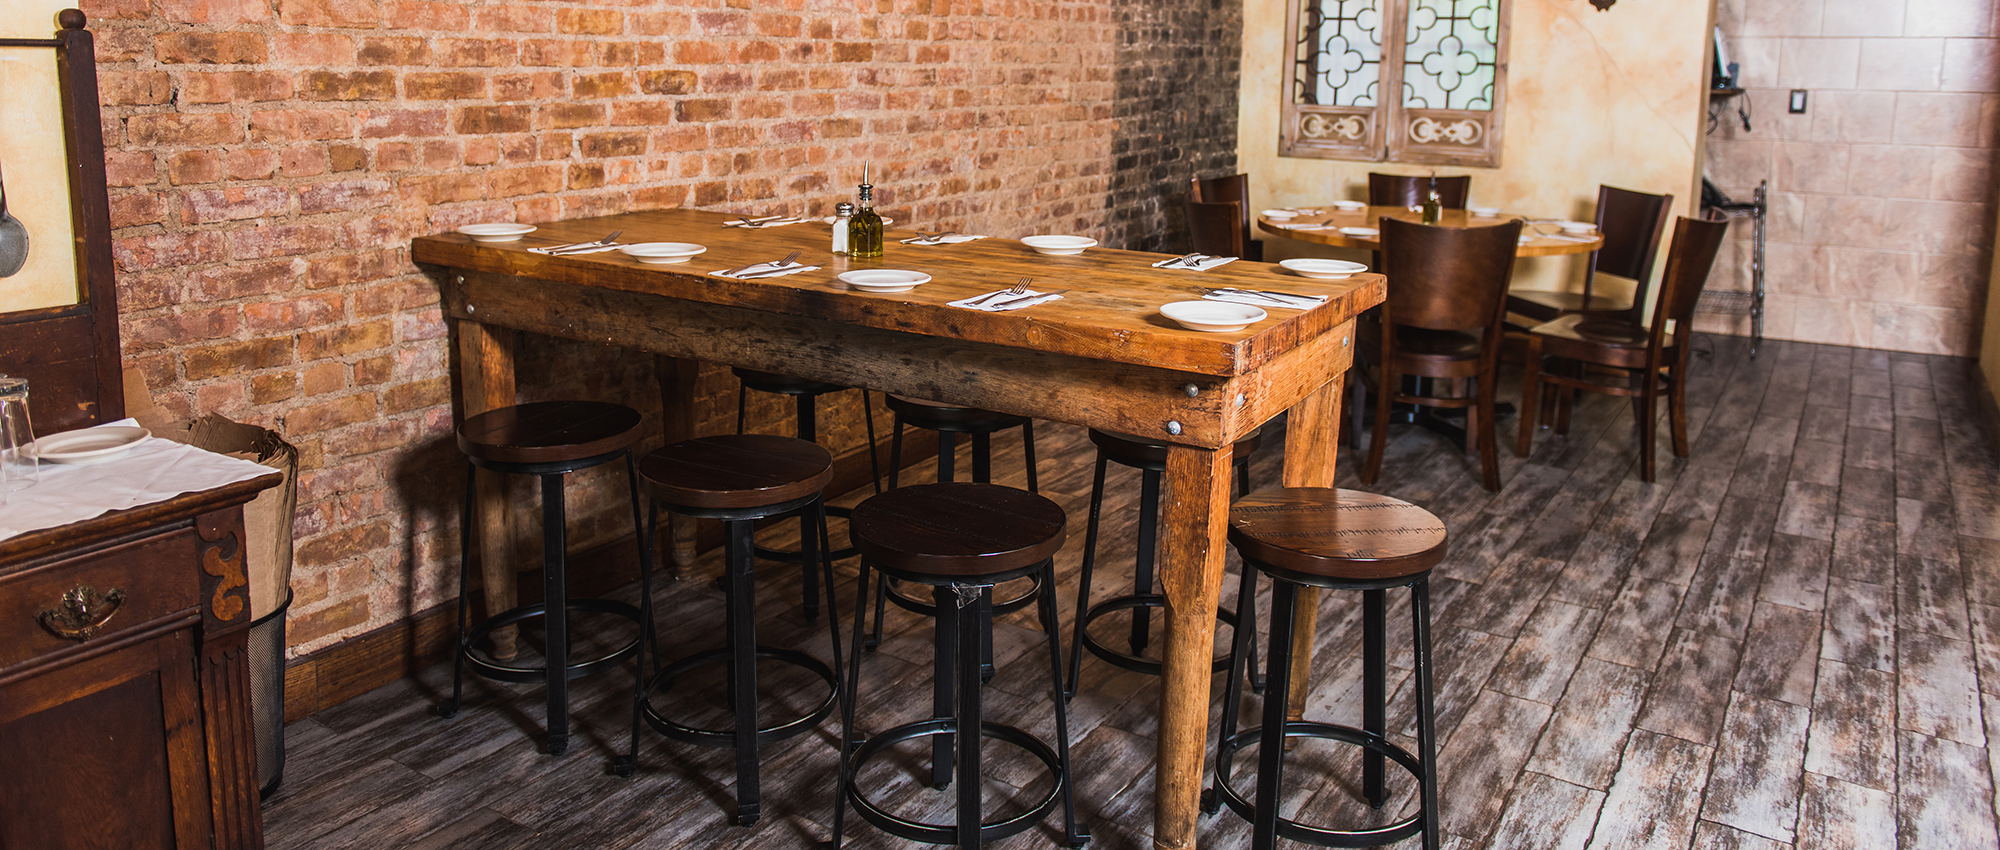 rustic wooden high-top table with bar stools